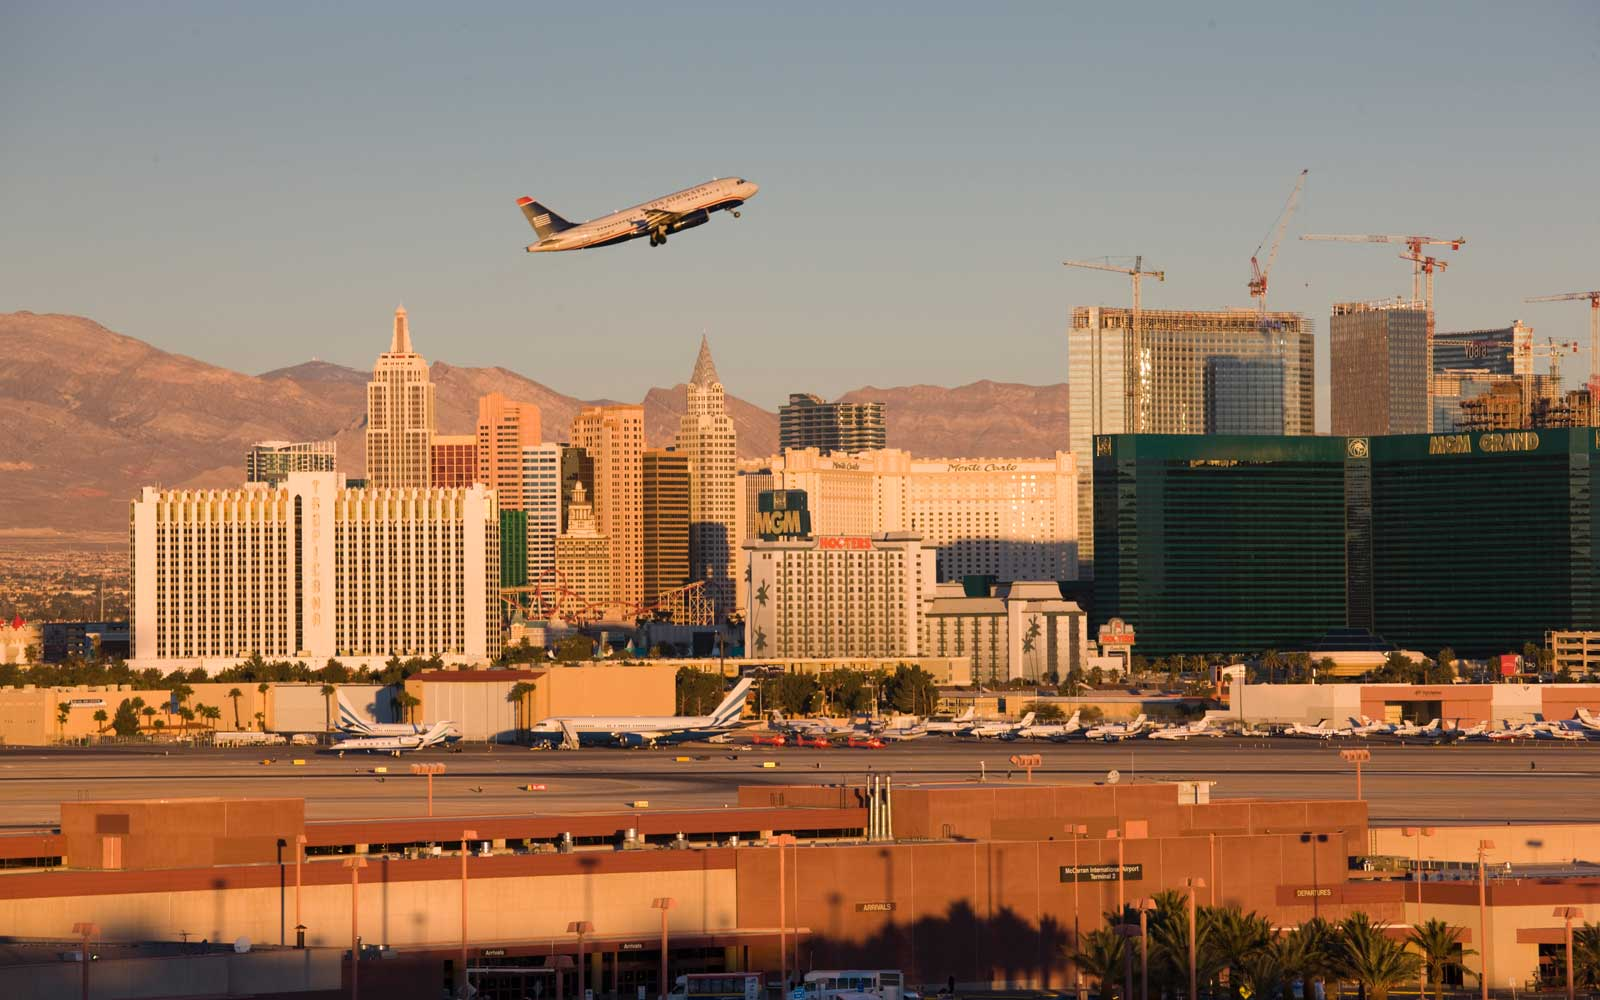 The Las Vegas McCarran International Airport is one of the top ranking mega airports when it comes to passenger satisfaction.